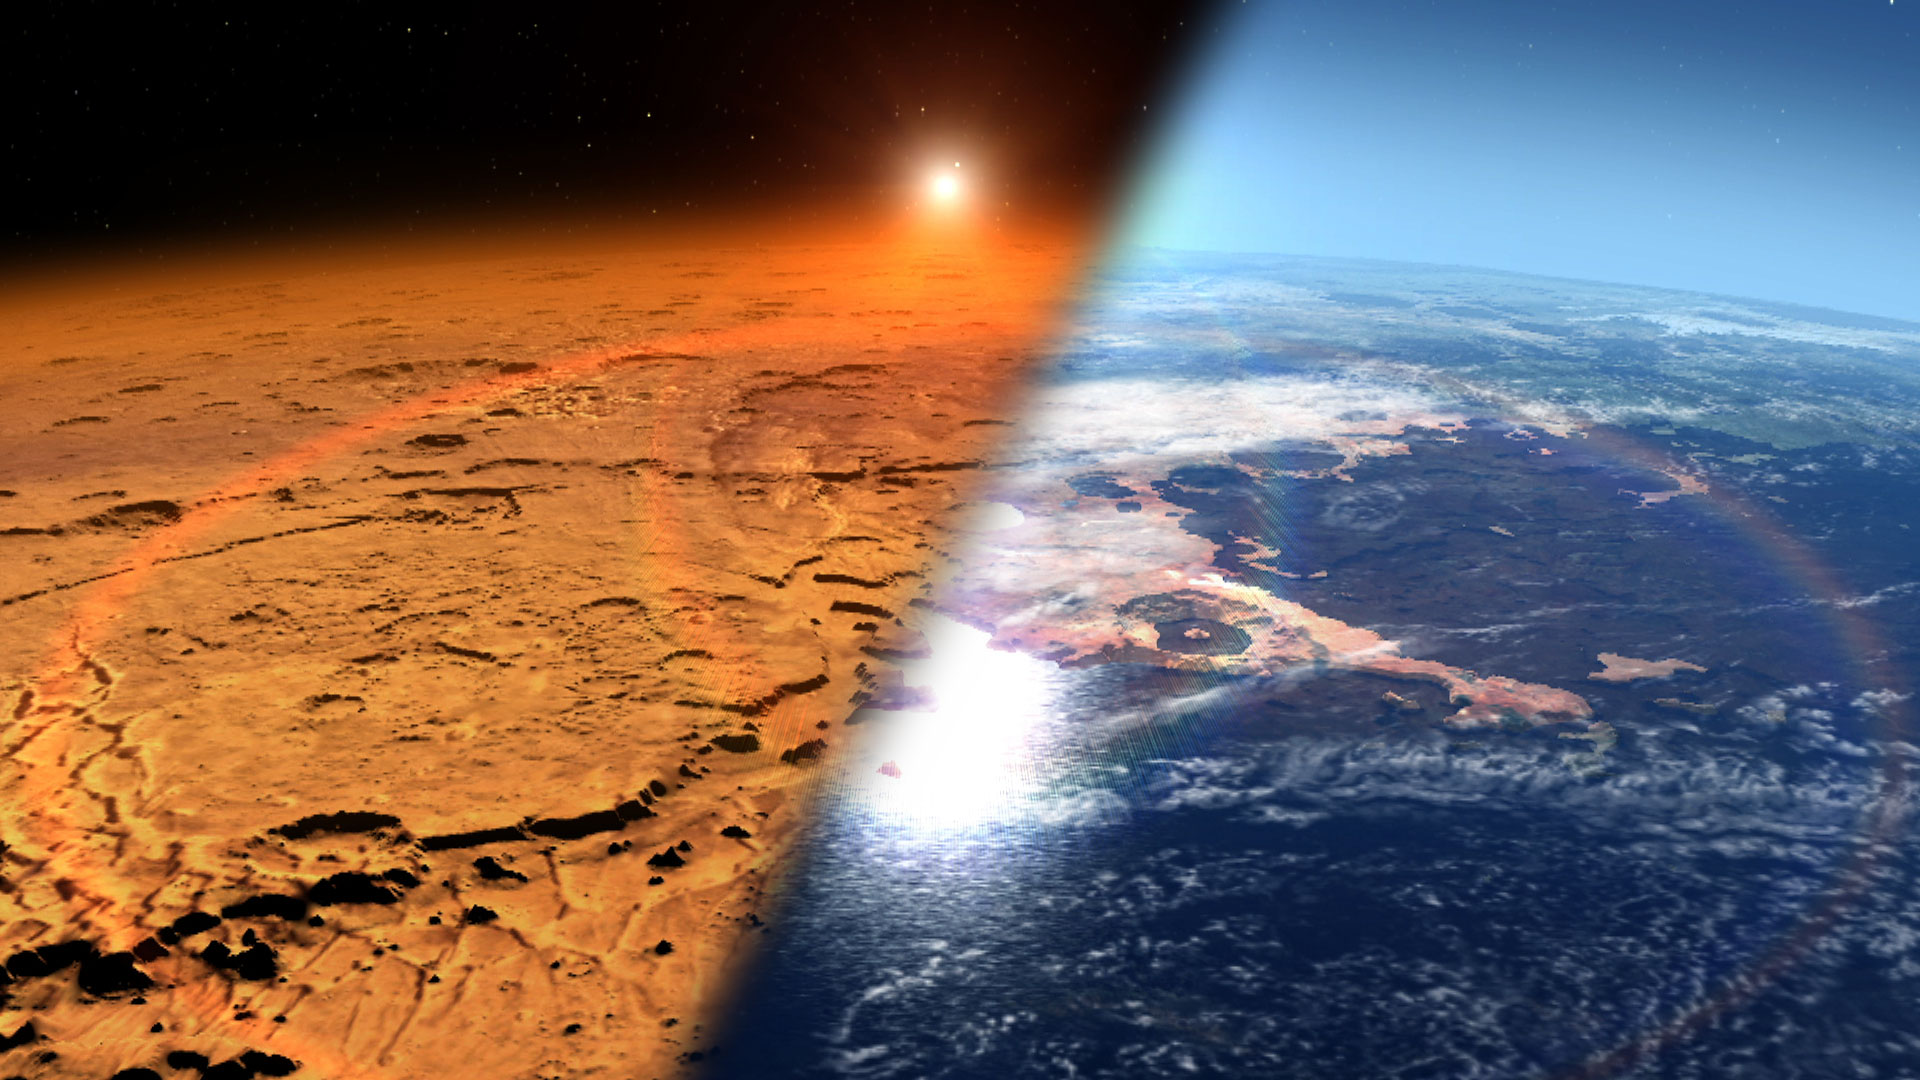 This artist's concept depicts the early Martian environment (right) – believed to contain liquid water and a thicker atmosphere – versus the cold, dry environment seen at Mars today (left). NASA's Mars Atmosphere and Volatile Evolution is in orbit of the Red Planet to study its upper atmosphere, ionosphere and interactions with the sun and solar wind. Credit: NASA's Goddard Space Flight Center